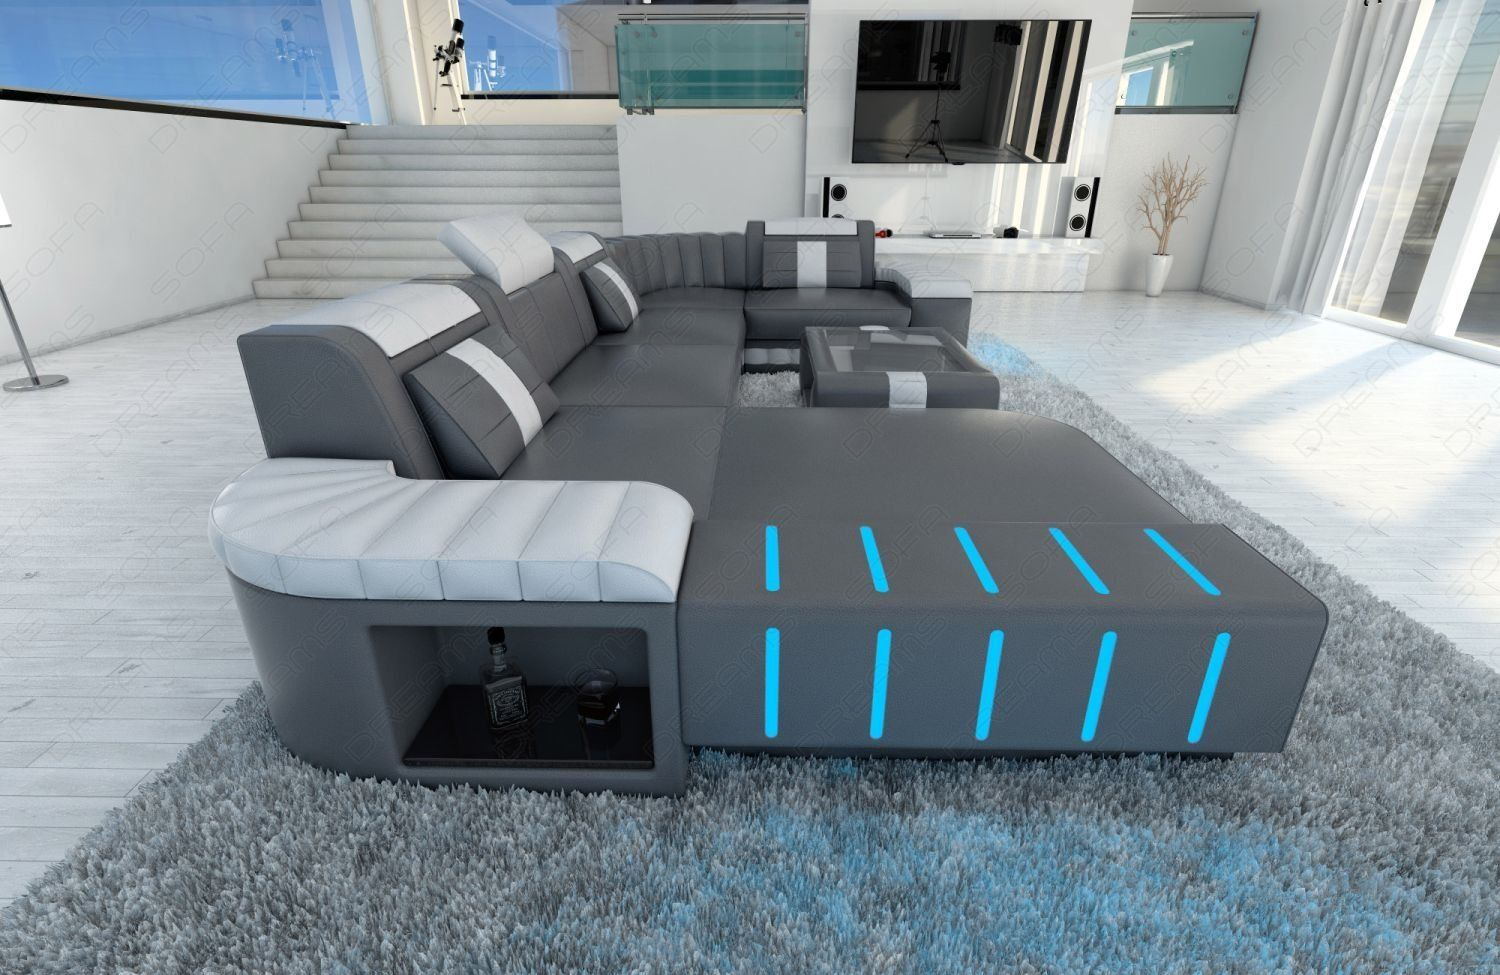 Xxl Sectional Sofa Jacksonville Led Lights U Shaped Pin By Crack For Men On Man Cave Sectional Sofa Cool